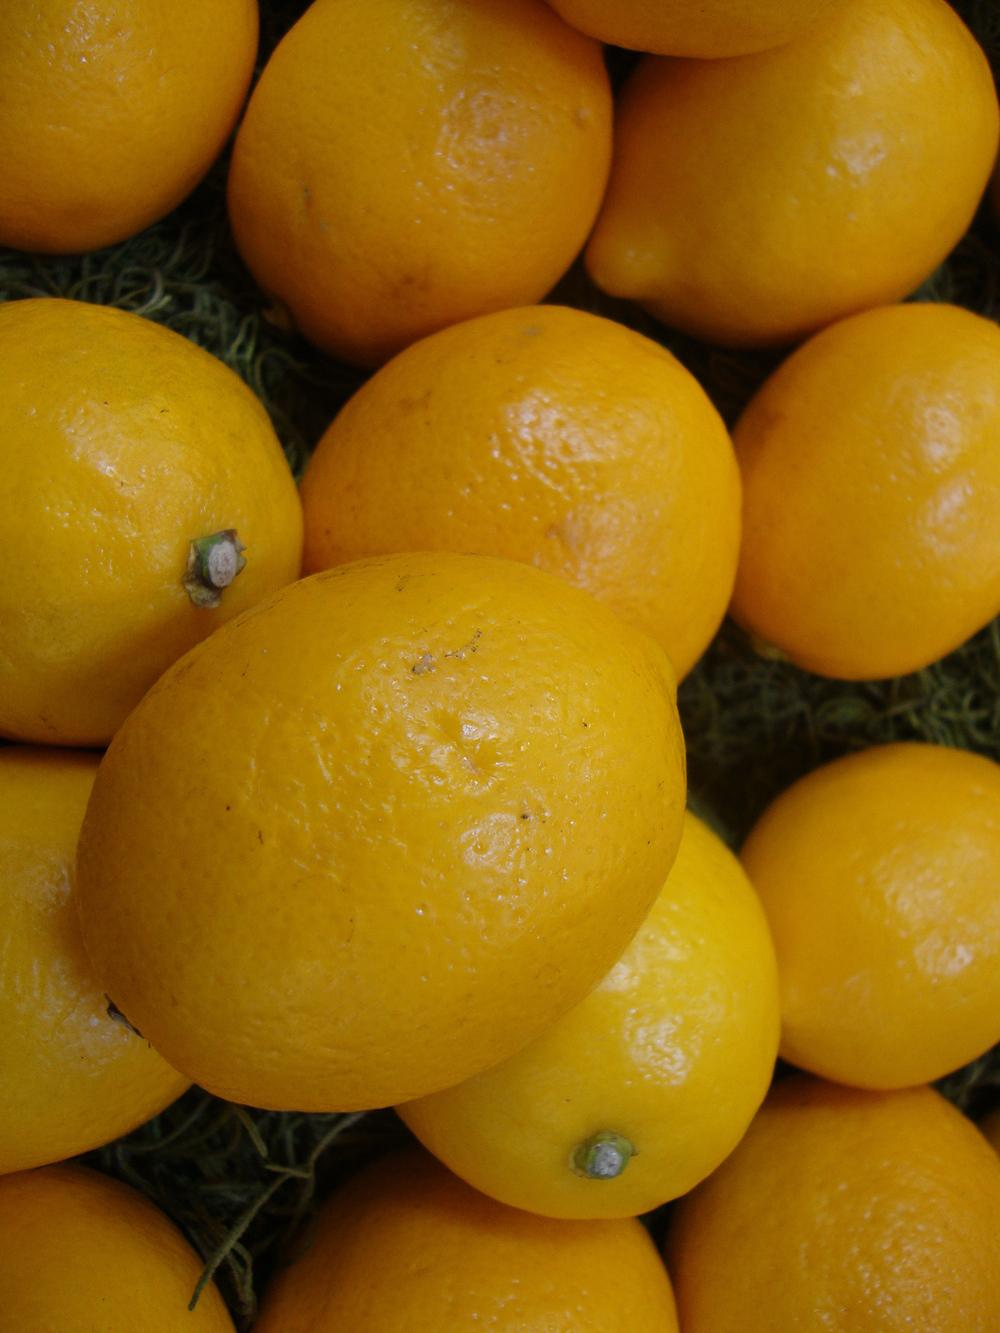 Photo of Lemon (Citrus x limon) uploaded by Paul2032